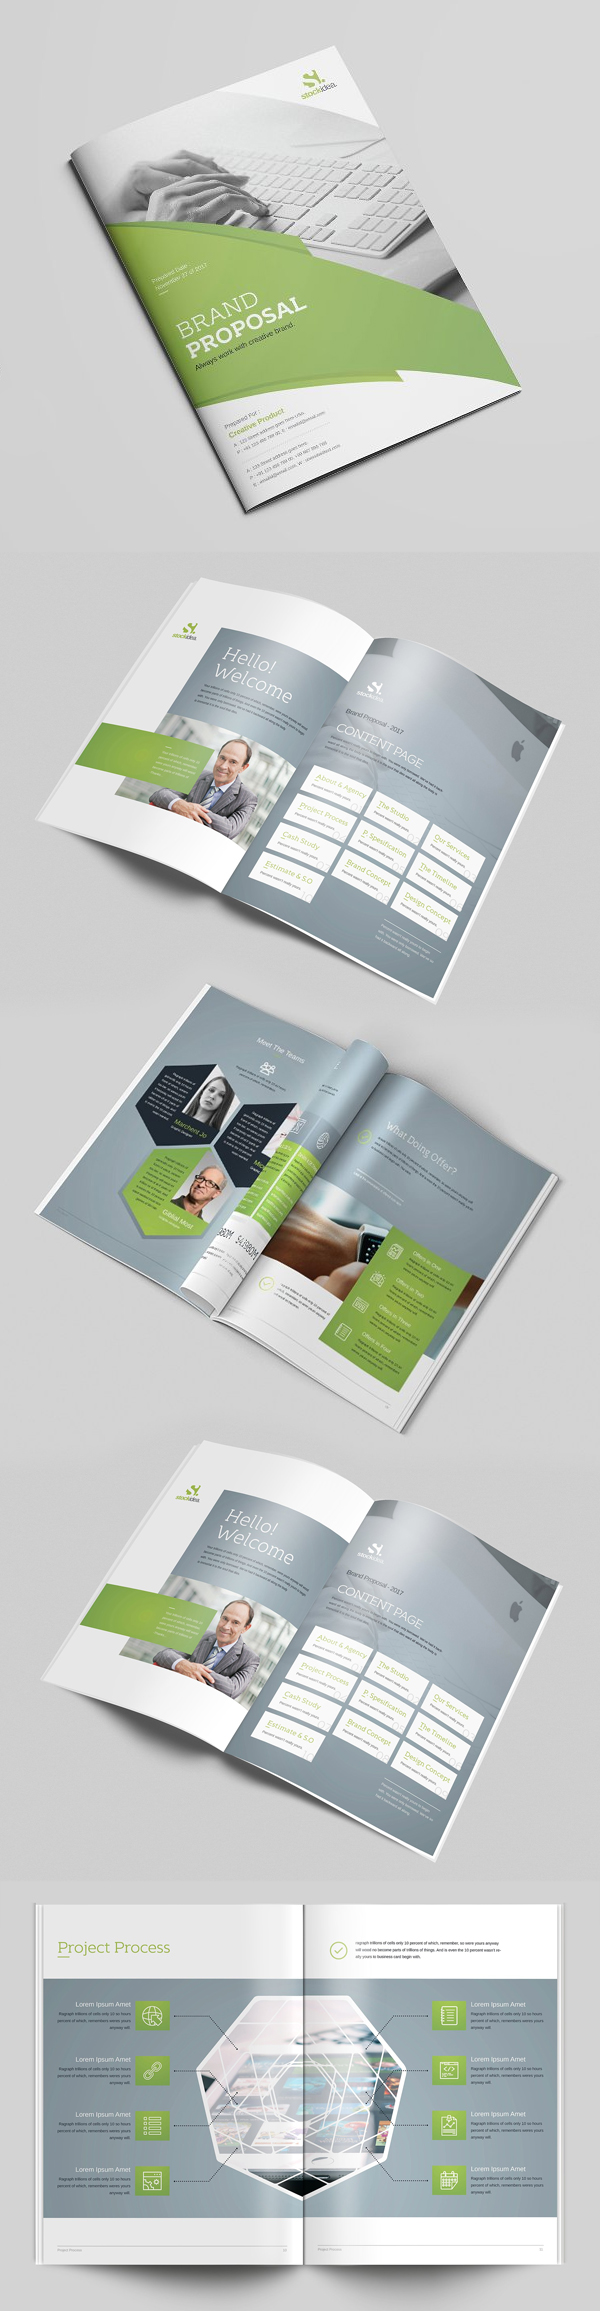 100 Professional Corporate Brochure Templates - 75